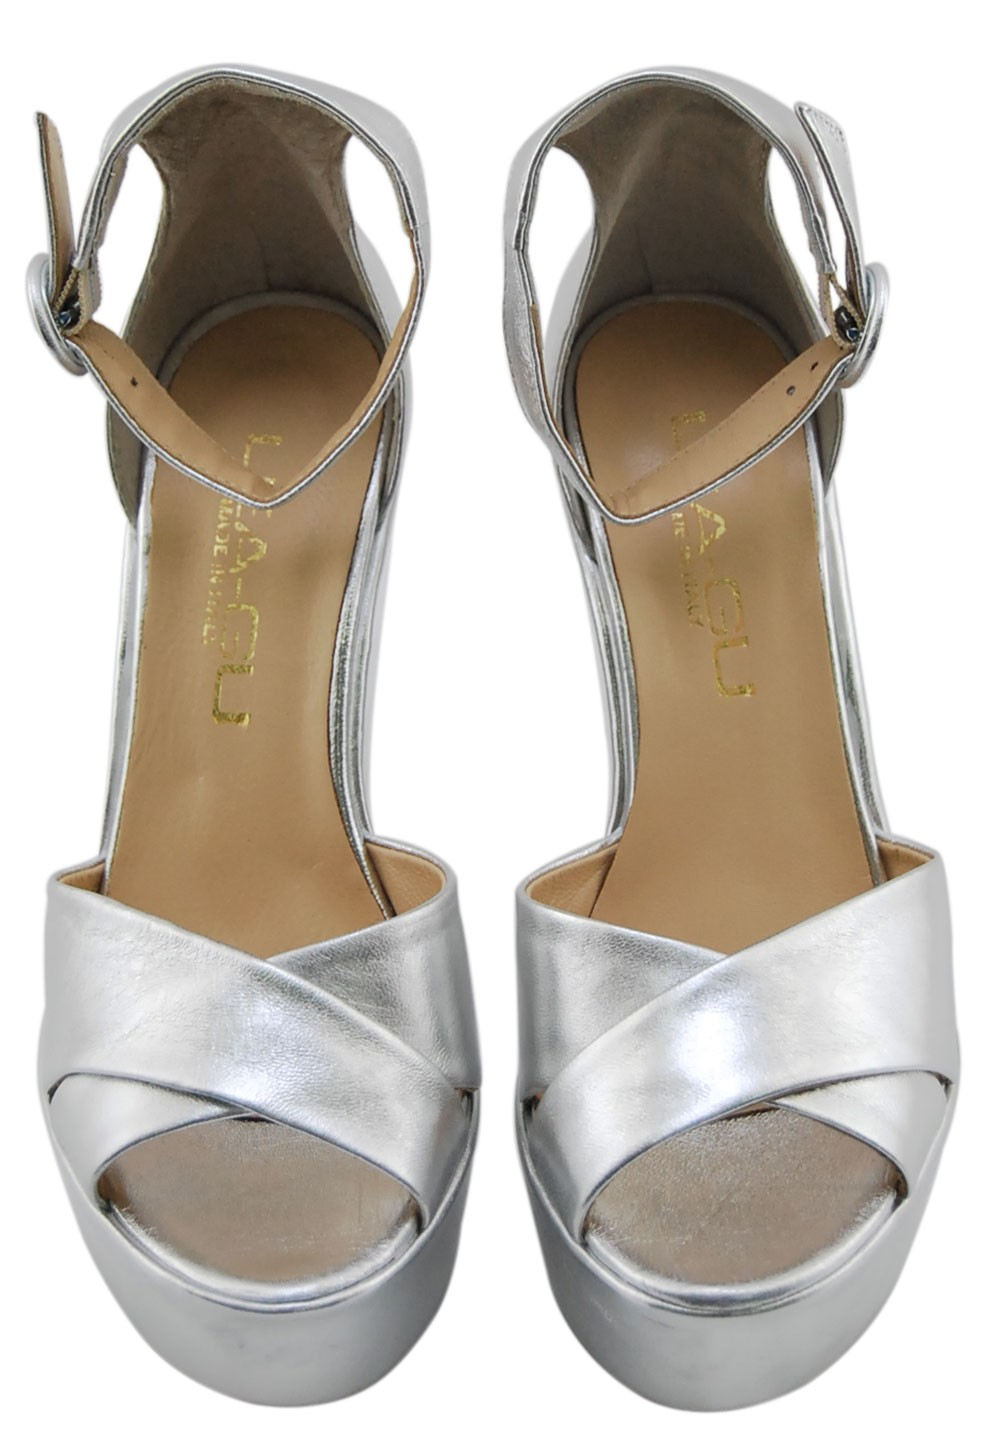 Wedge Sandal Lea Gu In Silver Laminated Leather